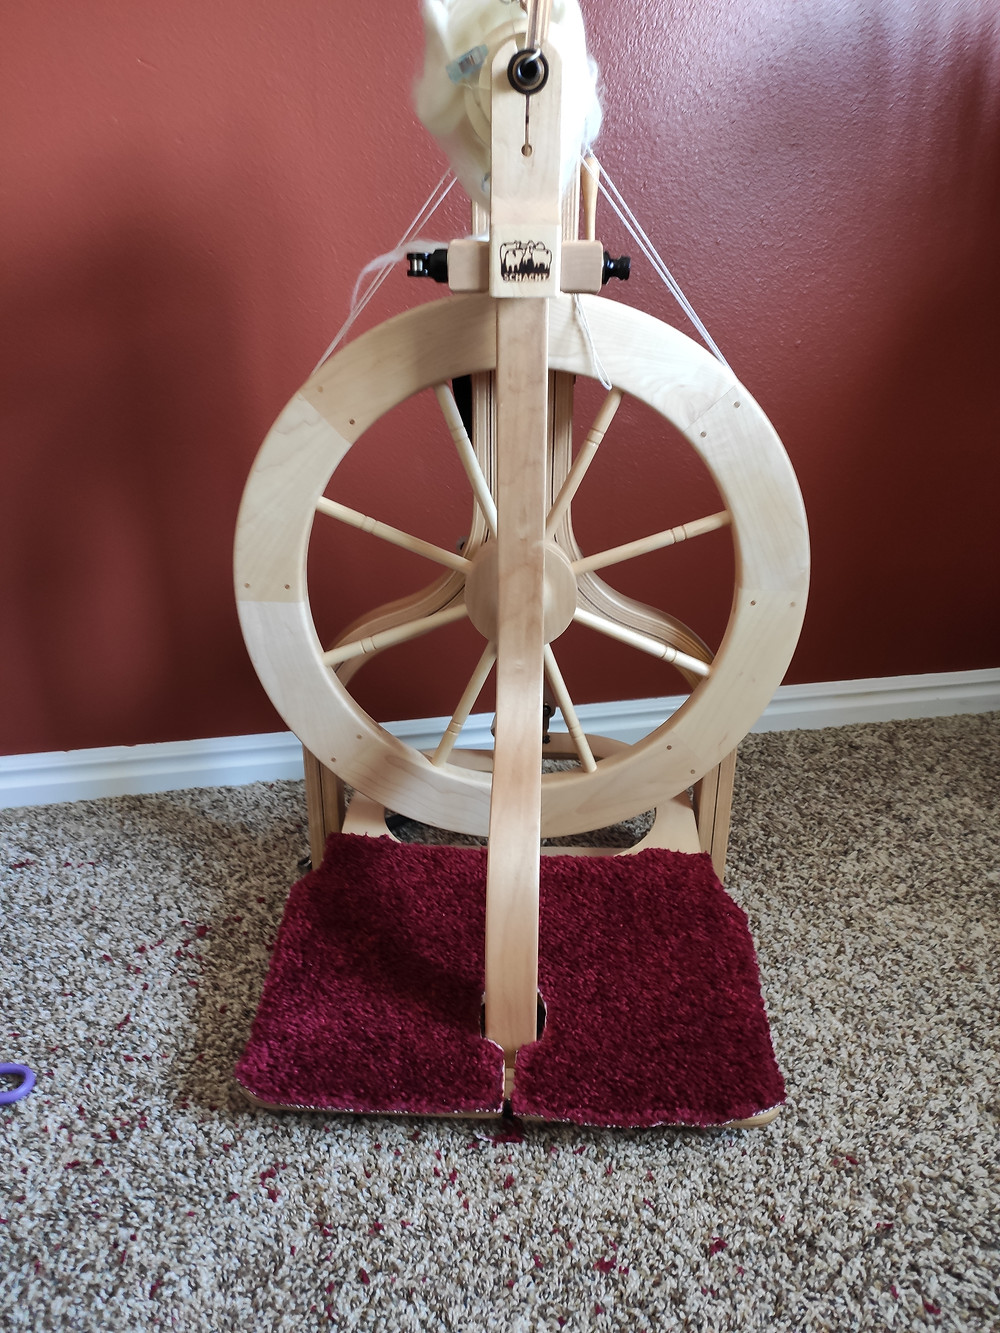 Schacht matchless spinning wheel with finished treadle covers on the treadles.